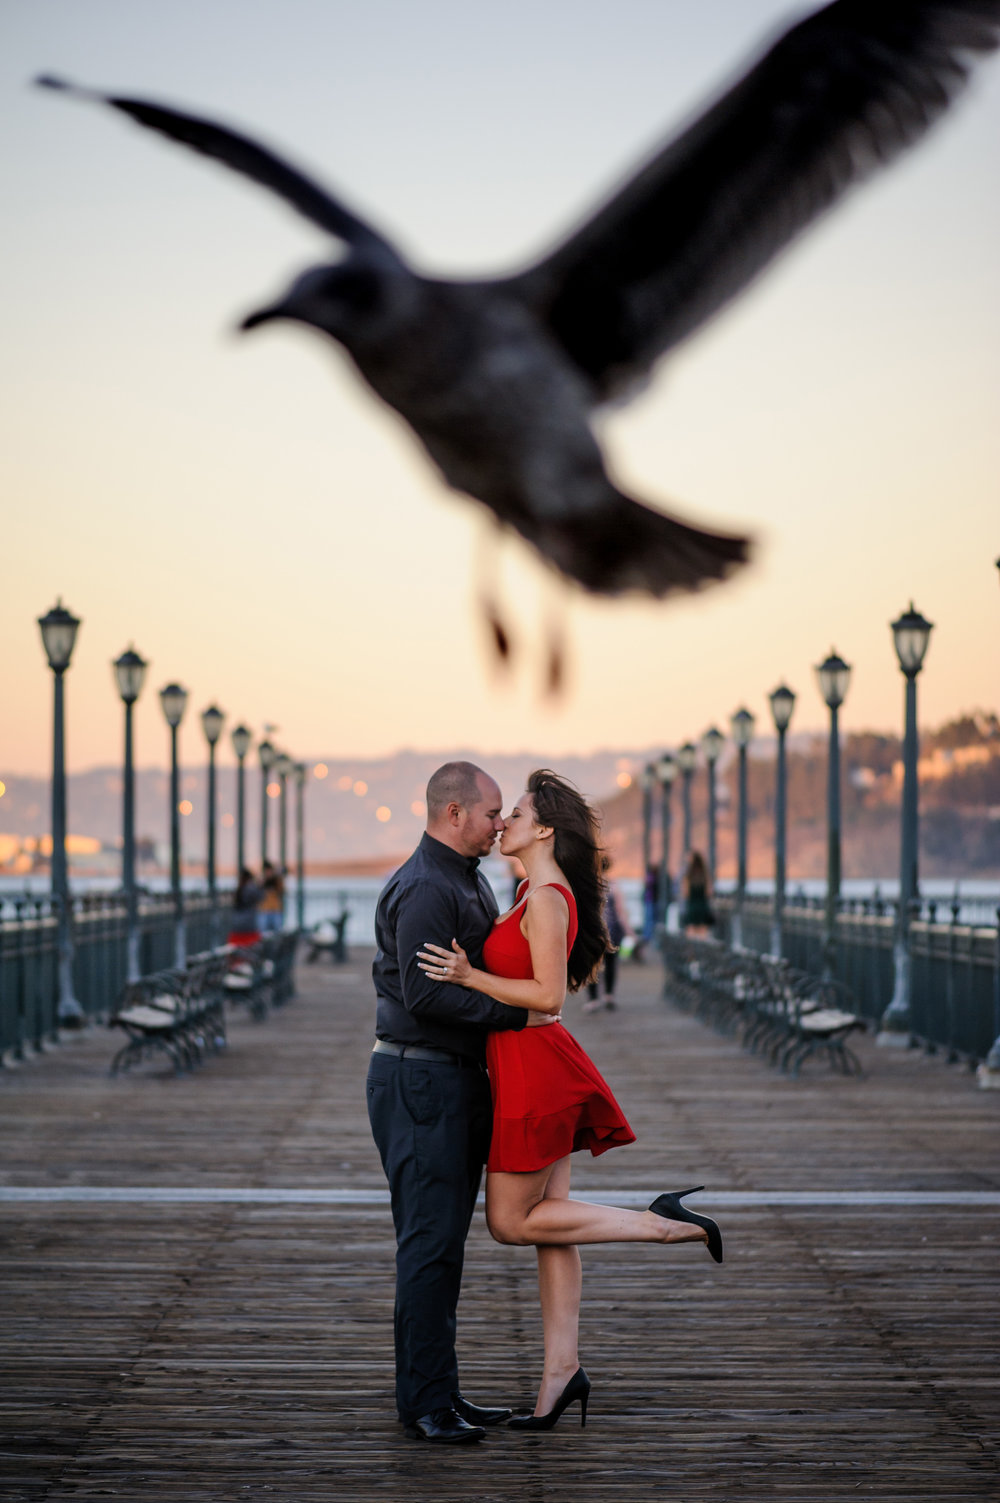 jenny-sean-029-san-francisco-engagement-sacramento-wedding-photographer-katherine-nicole-photography.JPG